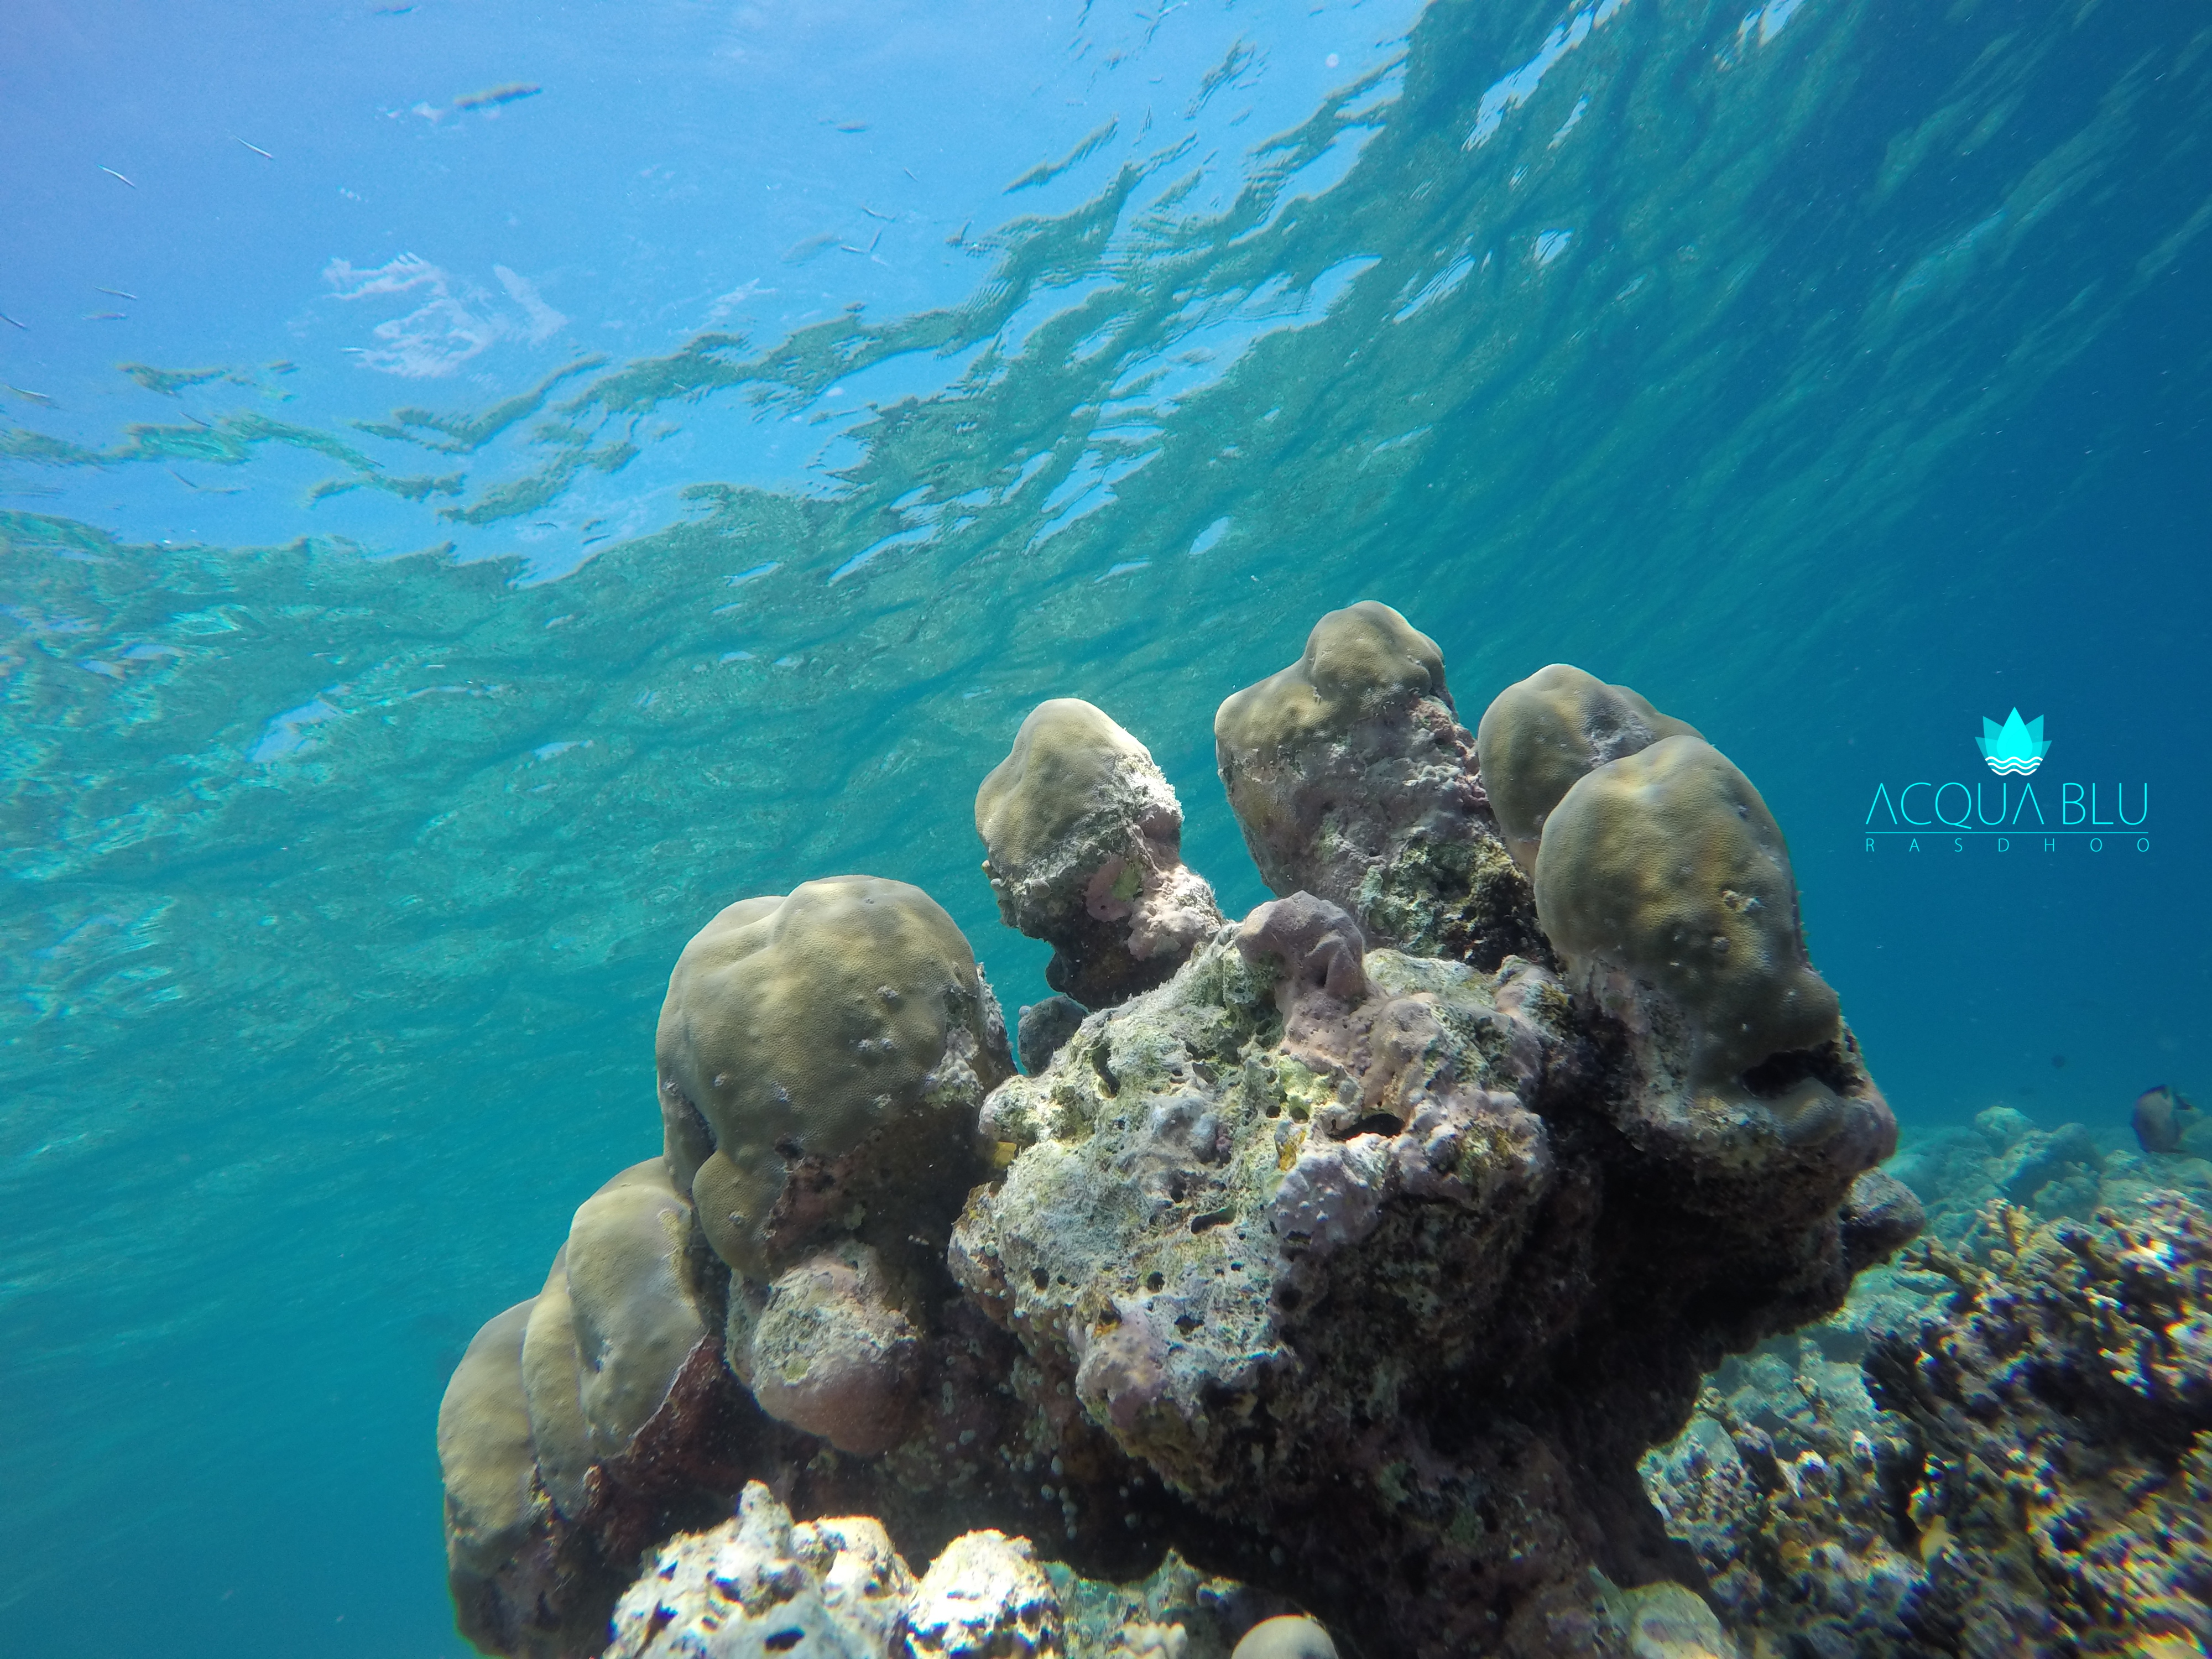 Snorkeling Photos | Acqua Blu Rasdho